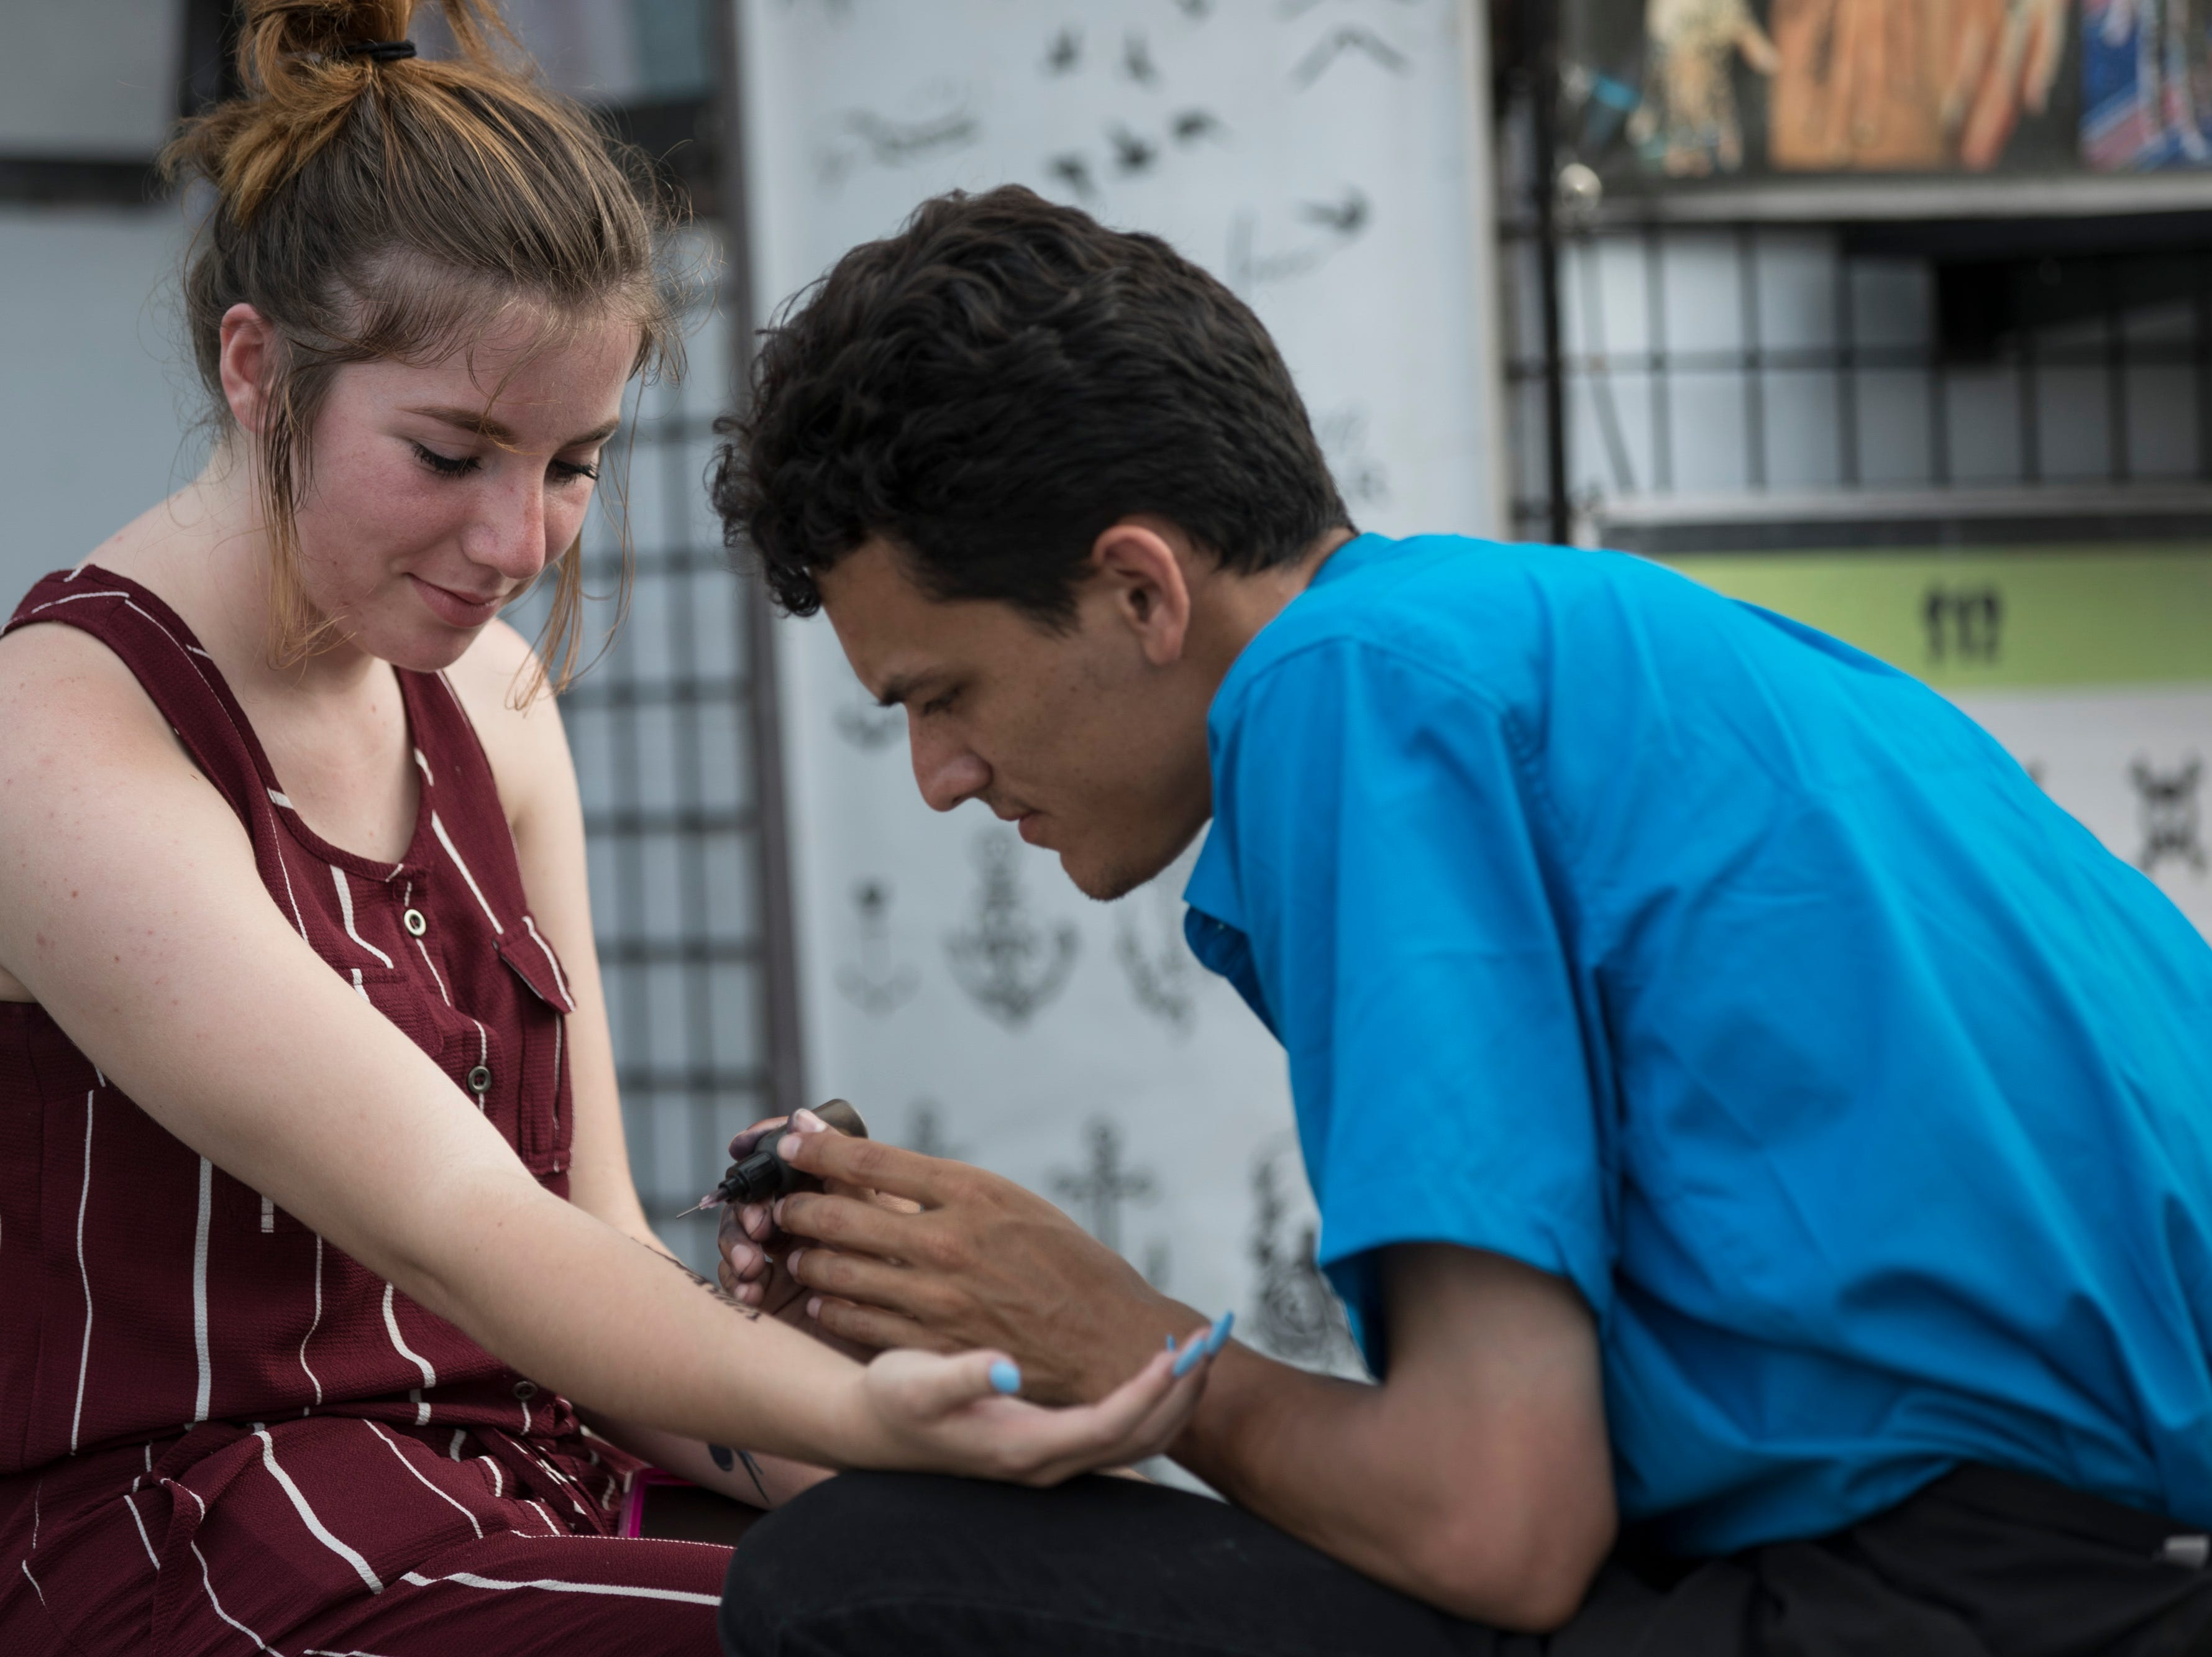 Billie-Rae Allport gets a fake tattoo by Christian Torres at the Kentucky State Fair on Monday. Aug. 20, 2018